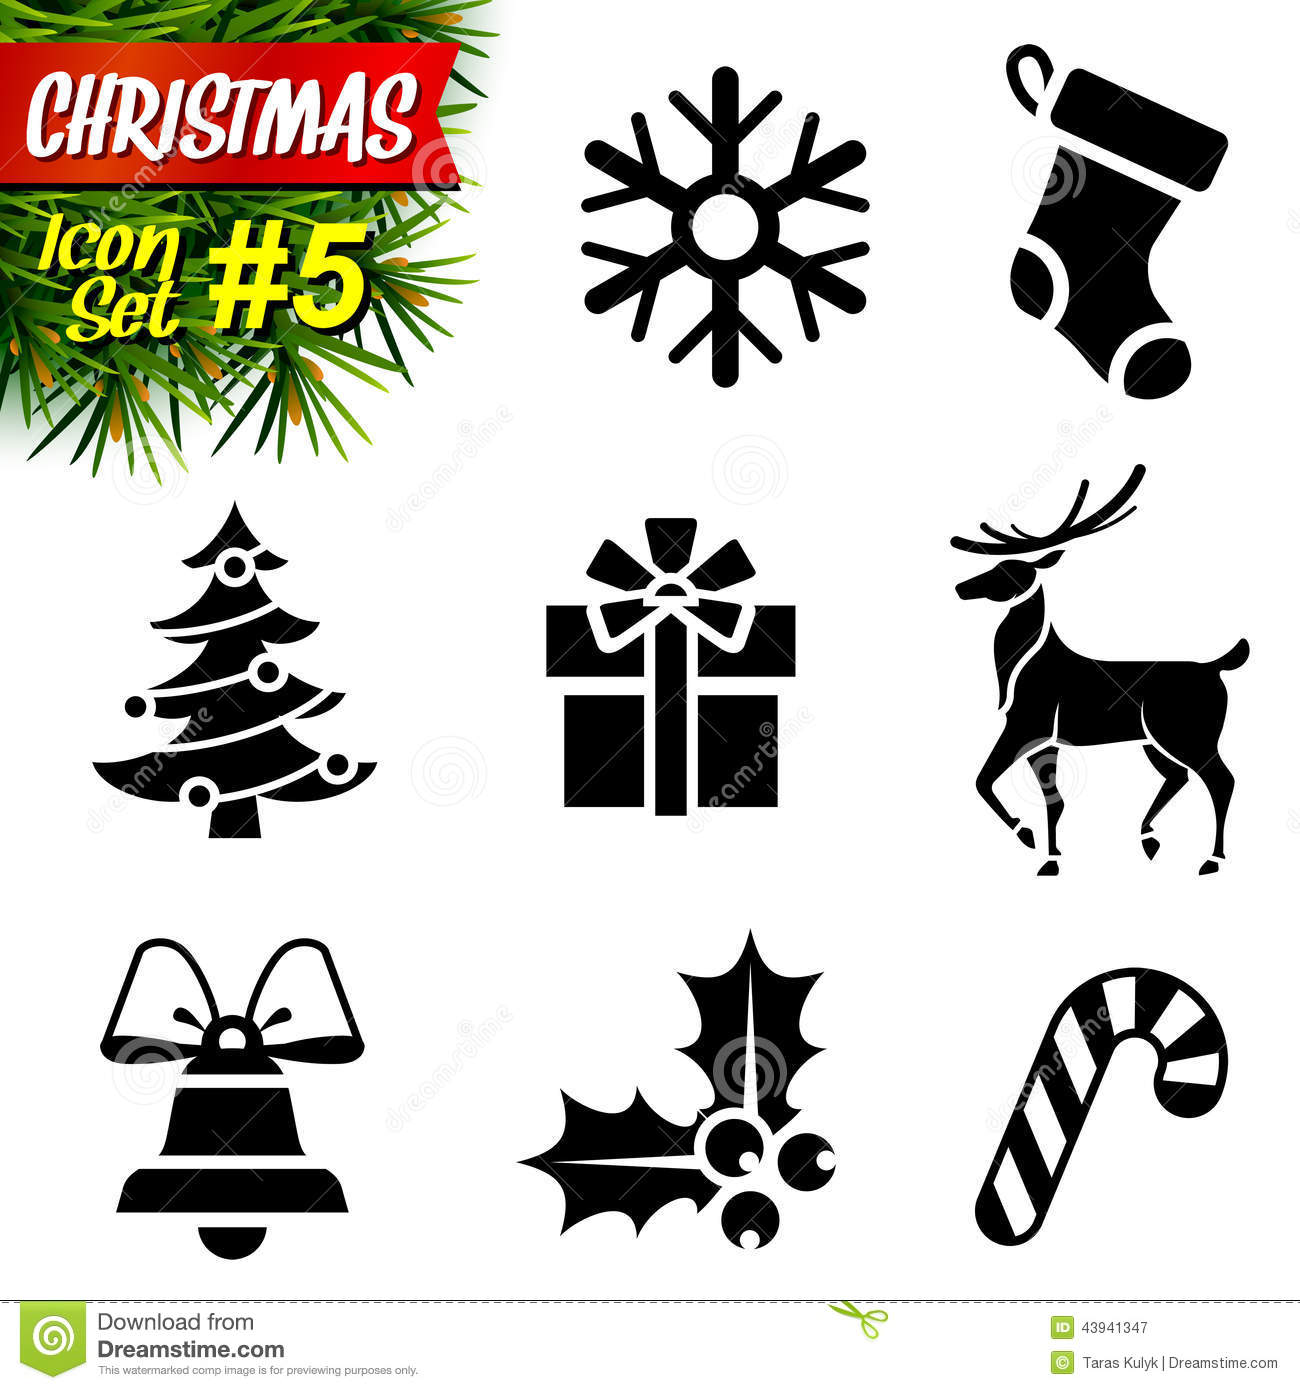 HD wallpapers business card symbols vector androidmobileccpattern.ml